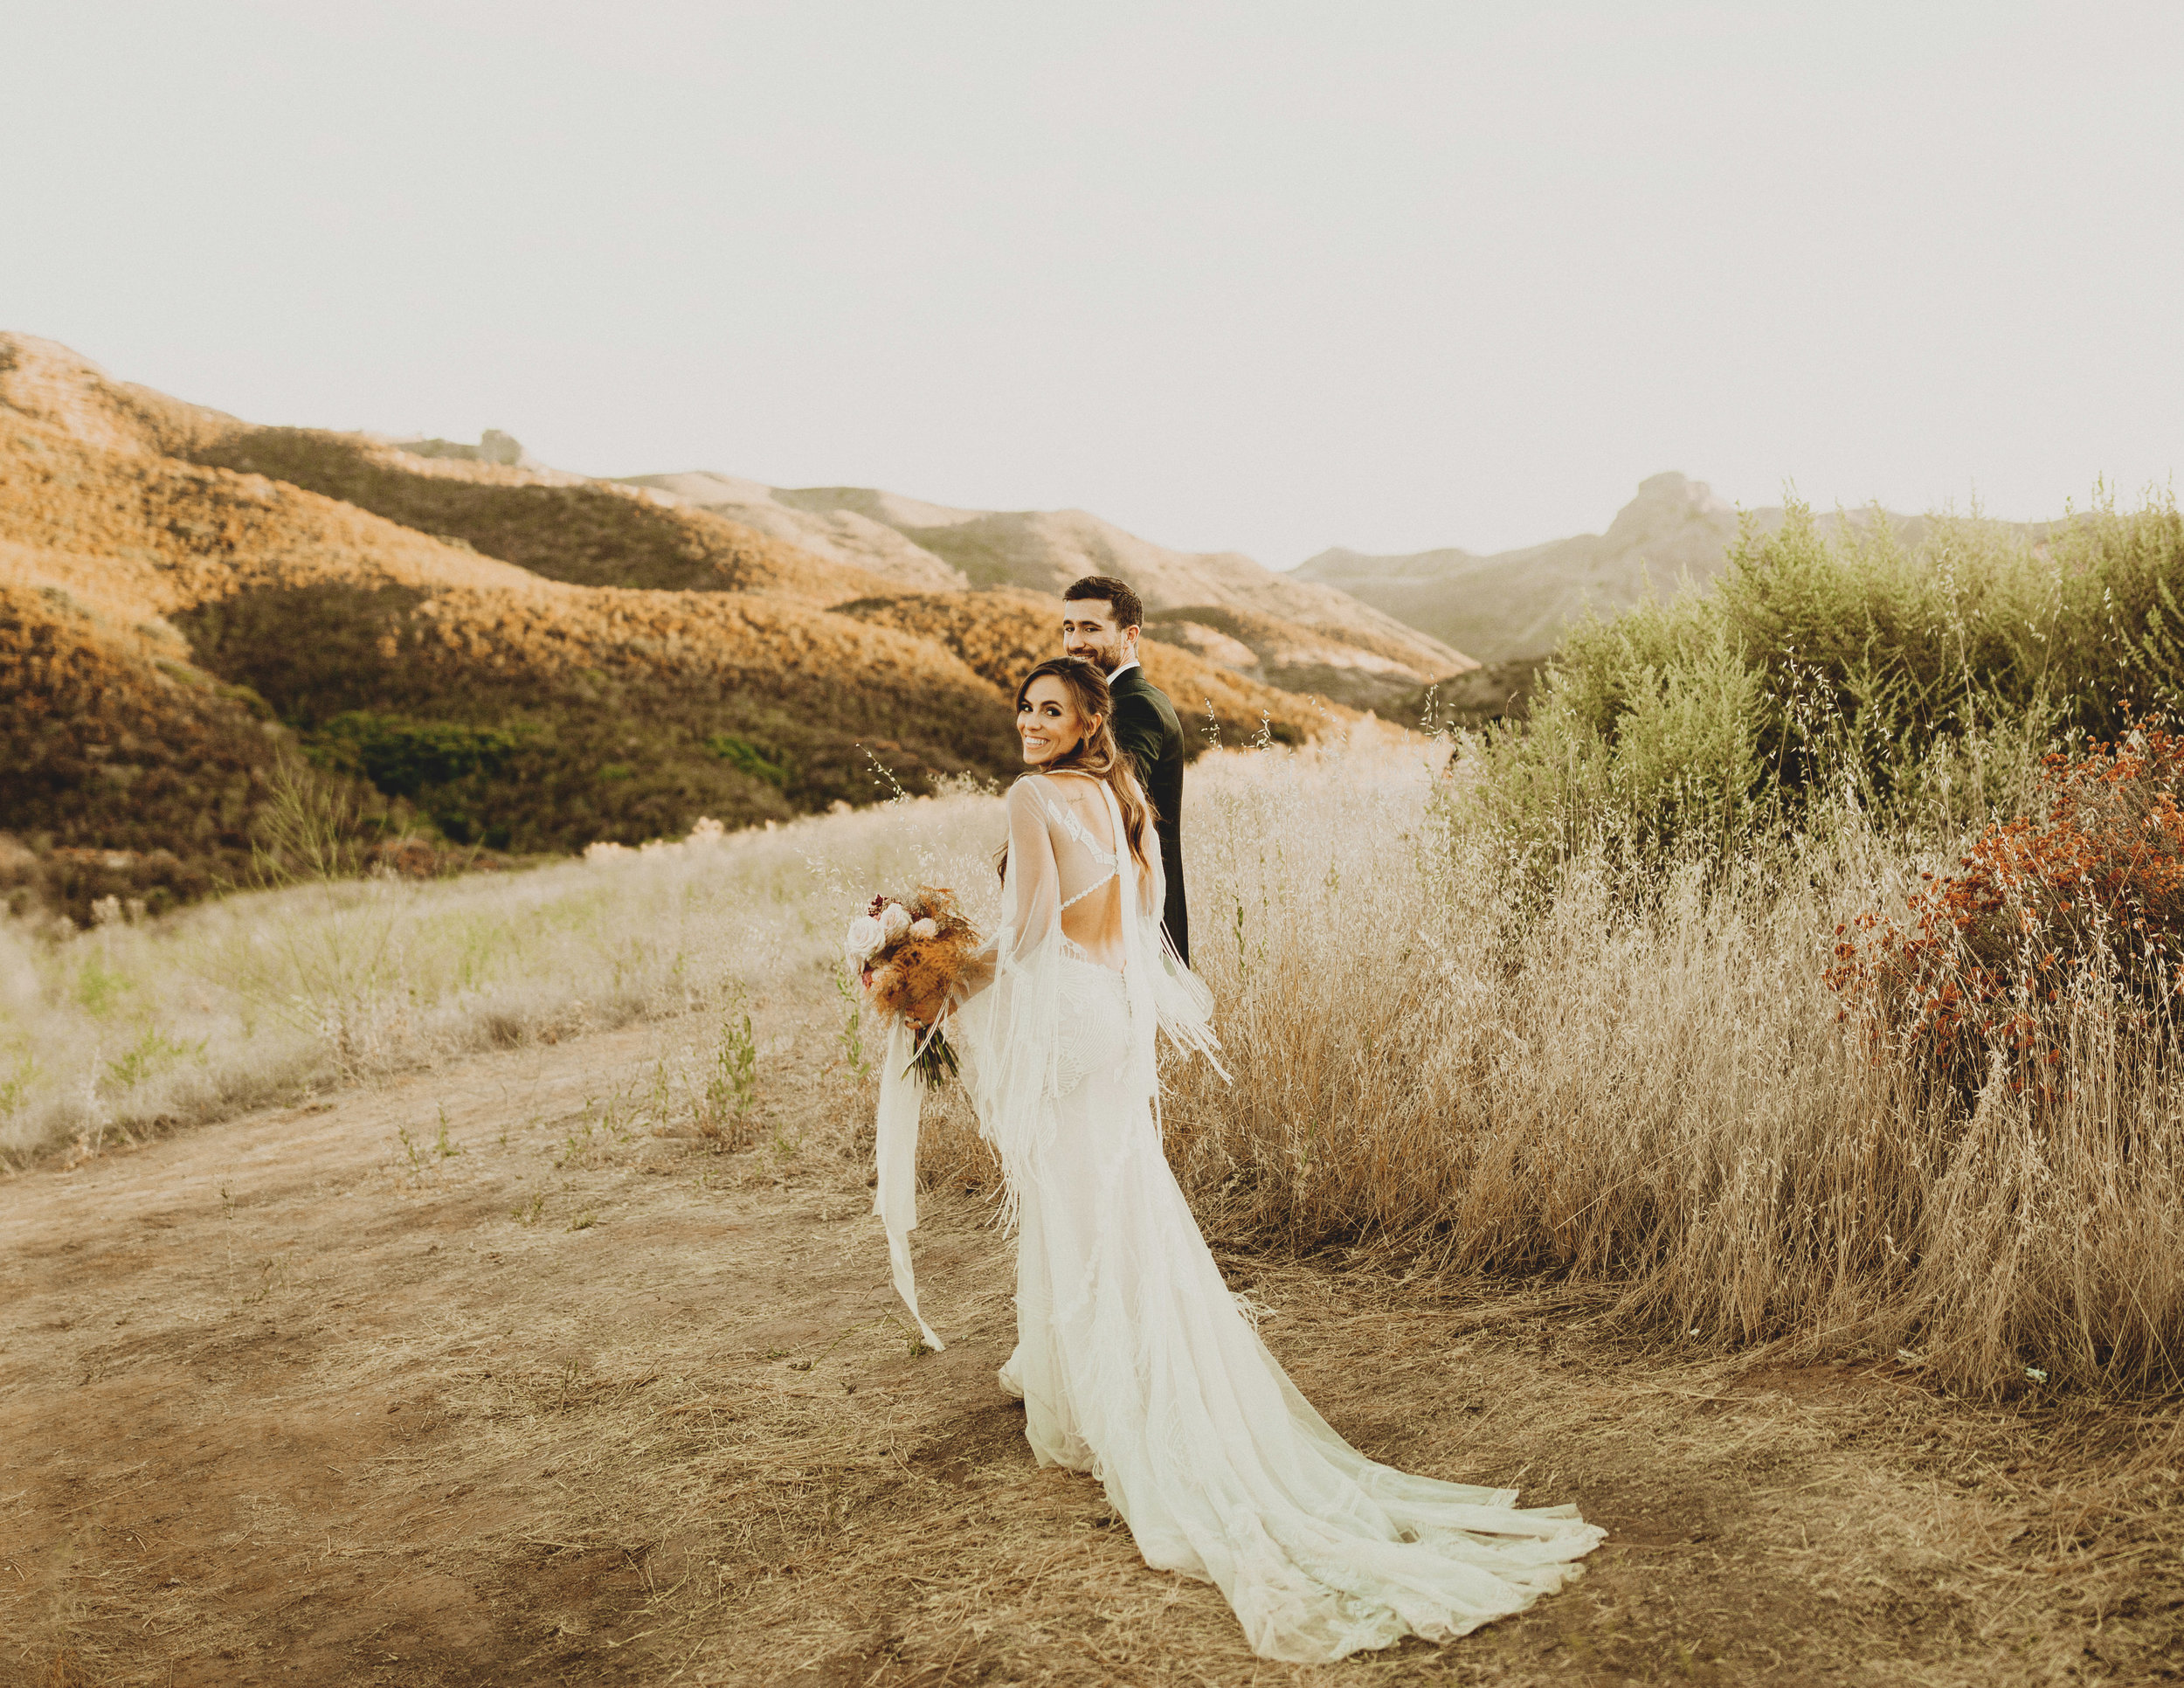 -California_Elopement_NellyCabanillas_Photography5110 copy.jpg